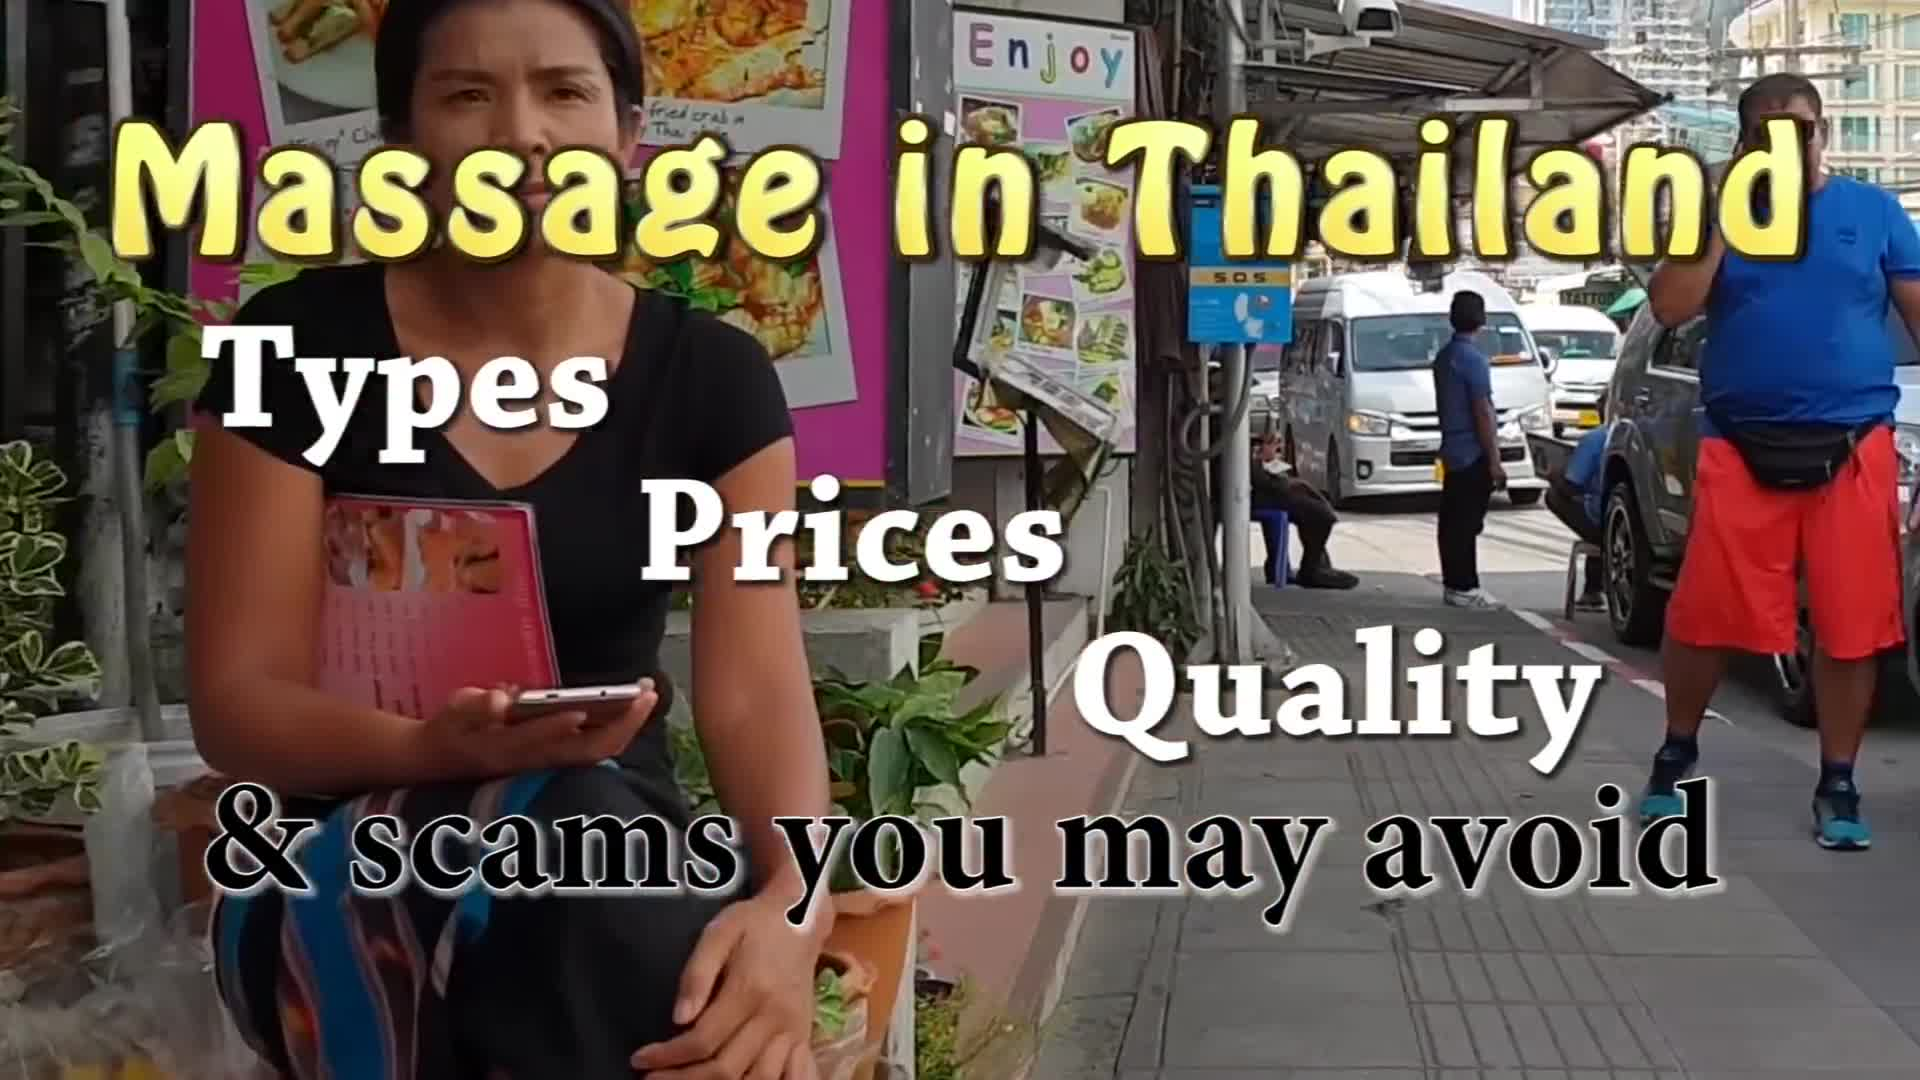 annies massage bangkok, best massage shops in bangkok, best massage shops in phuket, christina massage patong, live love thailand, massage in bangkok and prices, massage prices in bangkok thailand, massage prices in thailand 2019, massage services & prices in bangkok, massage shops sacms in thailand, massage types & prices in thailand, patong beach massage shops, travel & events, type of massages in bangkok, what are the prices of massage in thailand, where to have a good massage in thailand, Massage in Thailand - Types, Prices, Quality & scams you may avoid #livelovethailand GIFs